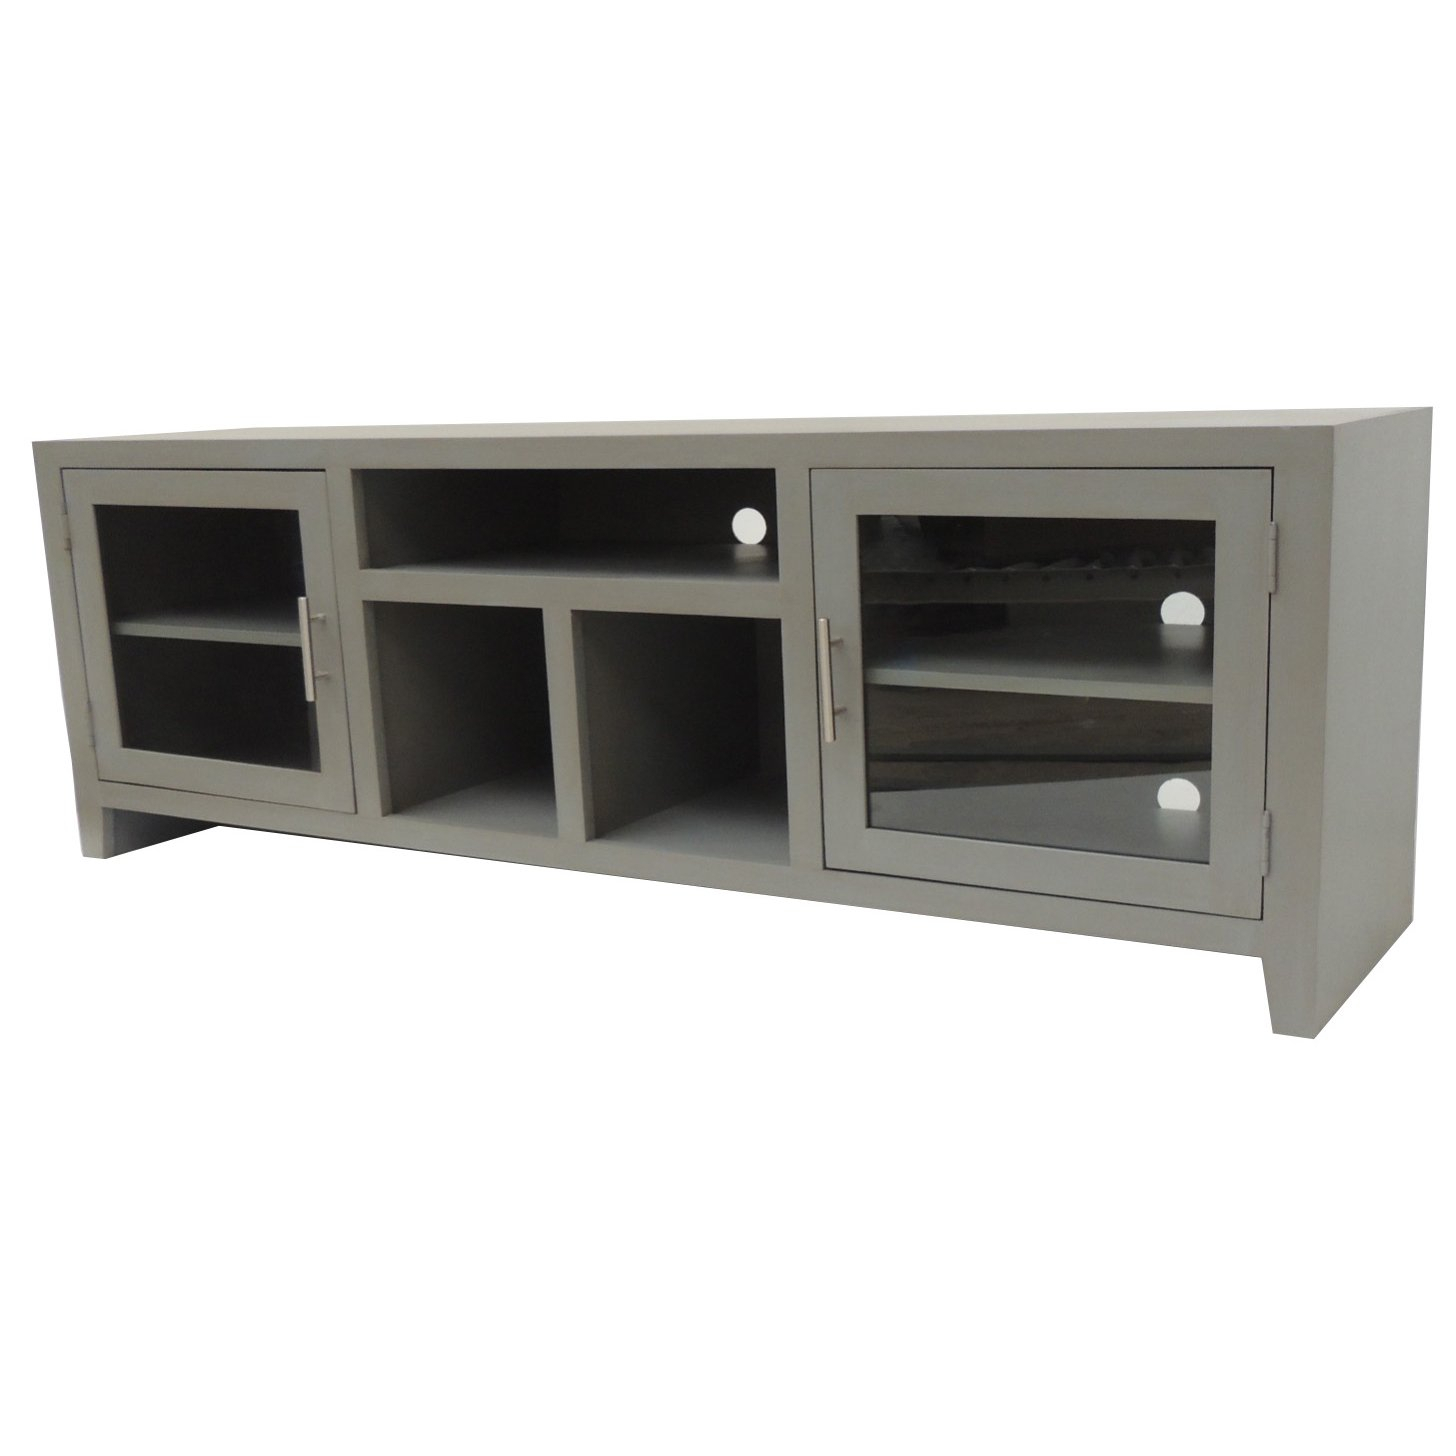 65 Inch Gray Tv Stand | Rc Willey Furniture Store In Draper 62 Inch Tv Stands (View 4 of 30)